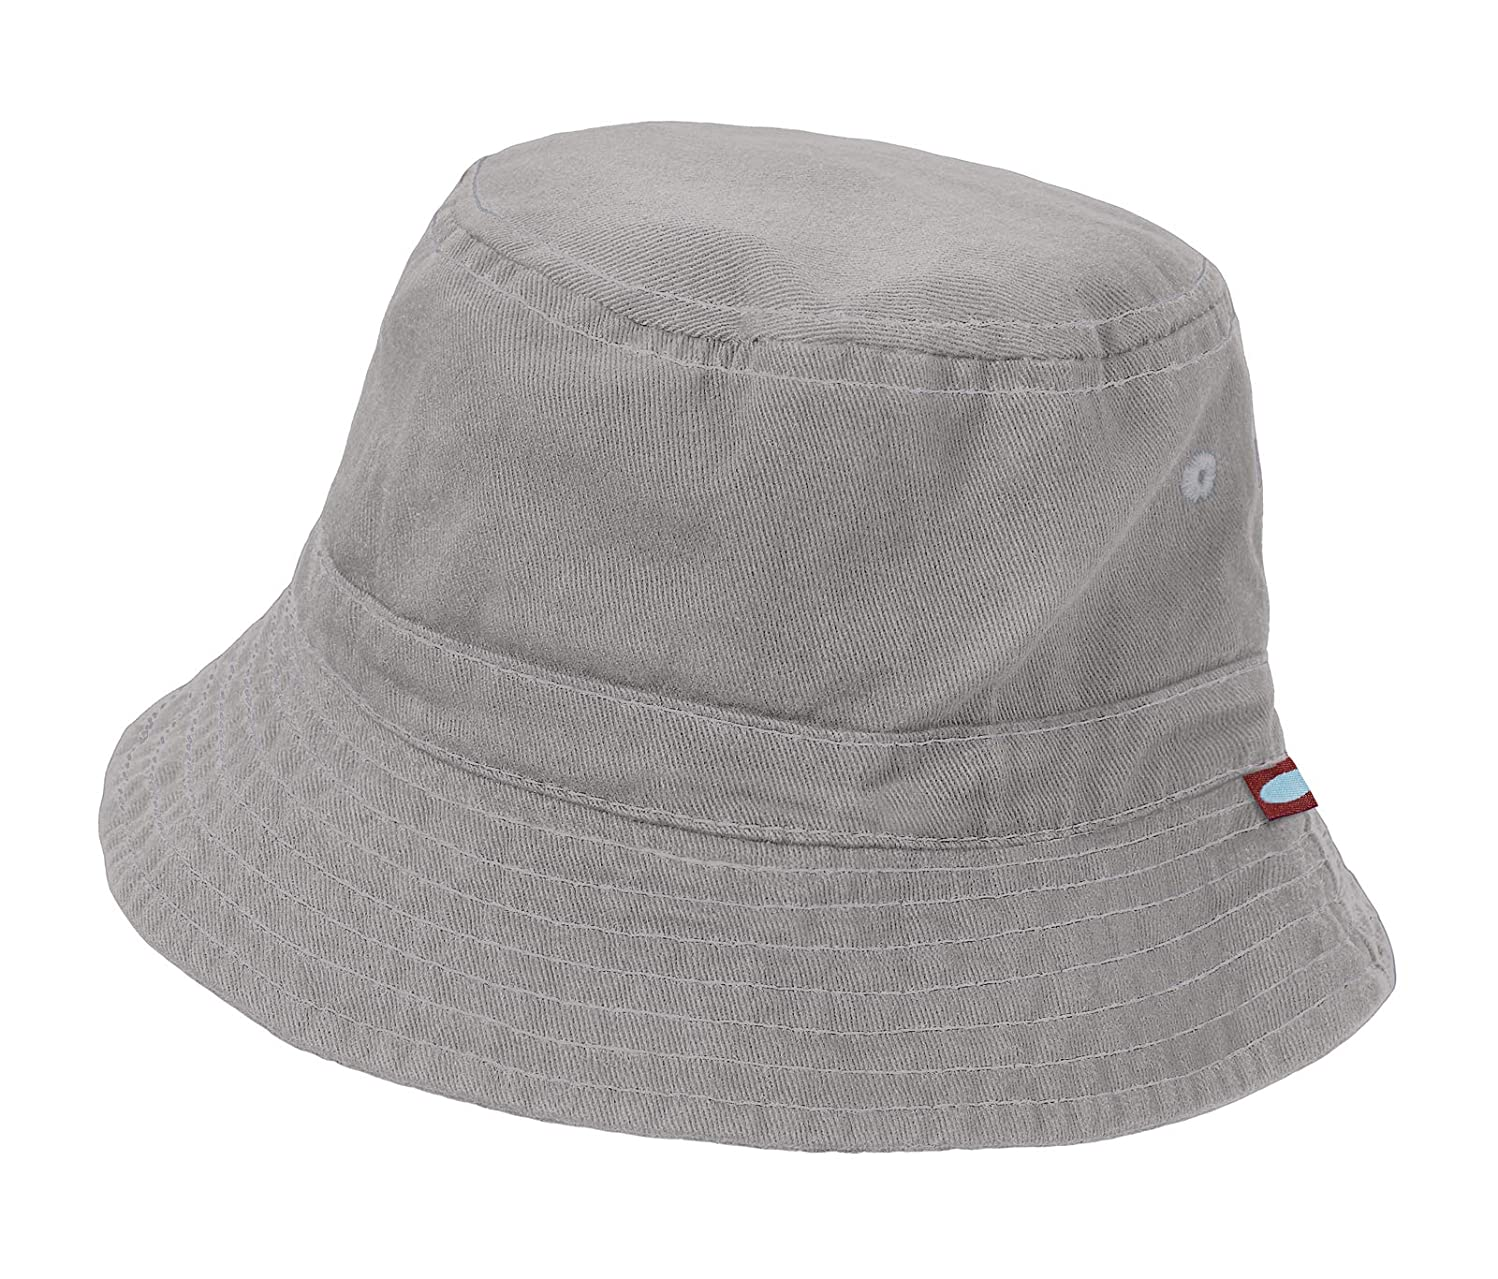 City Threads Bucket Hat for Boys and Girls Sun Protection Sun Hat (Baby Toddler Youth)